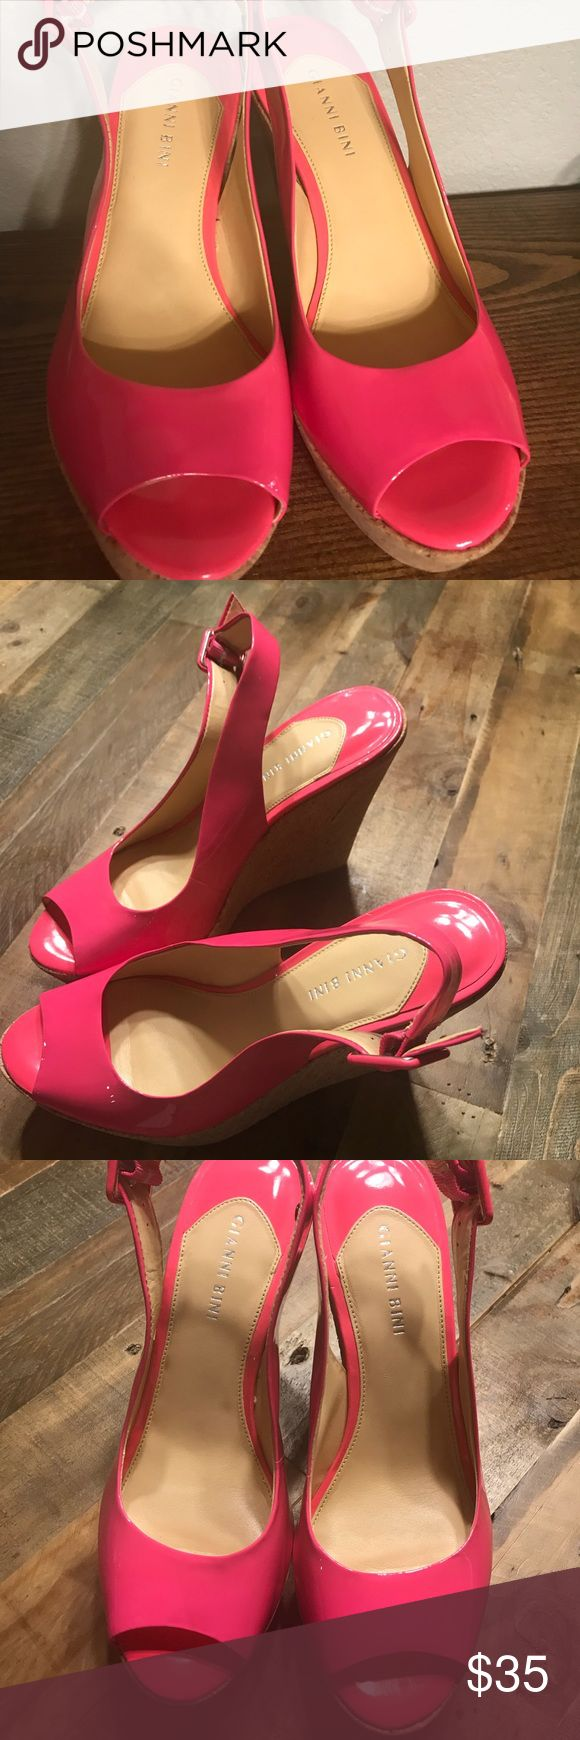 Hot pink Wedges!!! These super fun wedges are great for spring and summer.  Add to a cute solid black or white dress and make a statement! Patent leather will do that! Gianni Bini Shoes Wedges